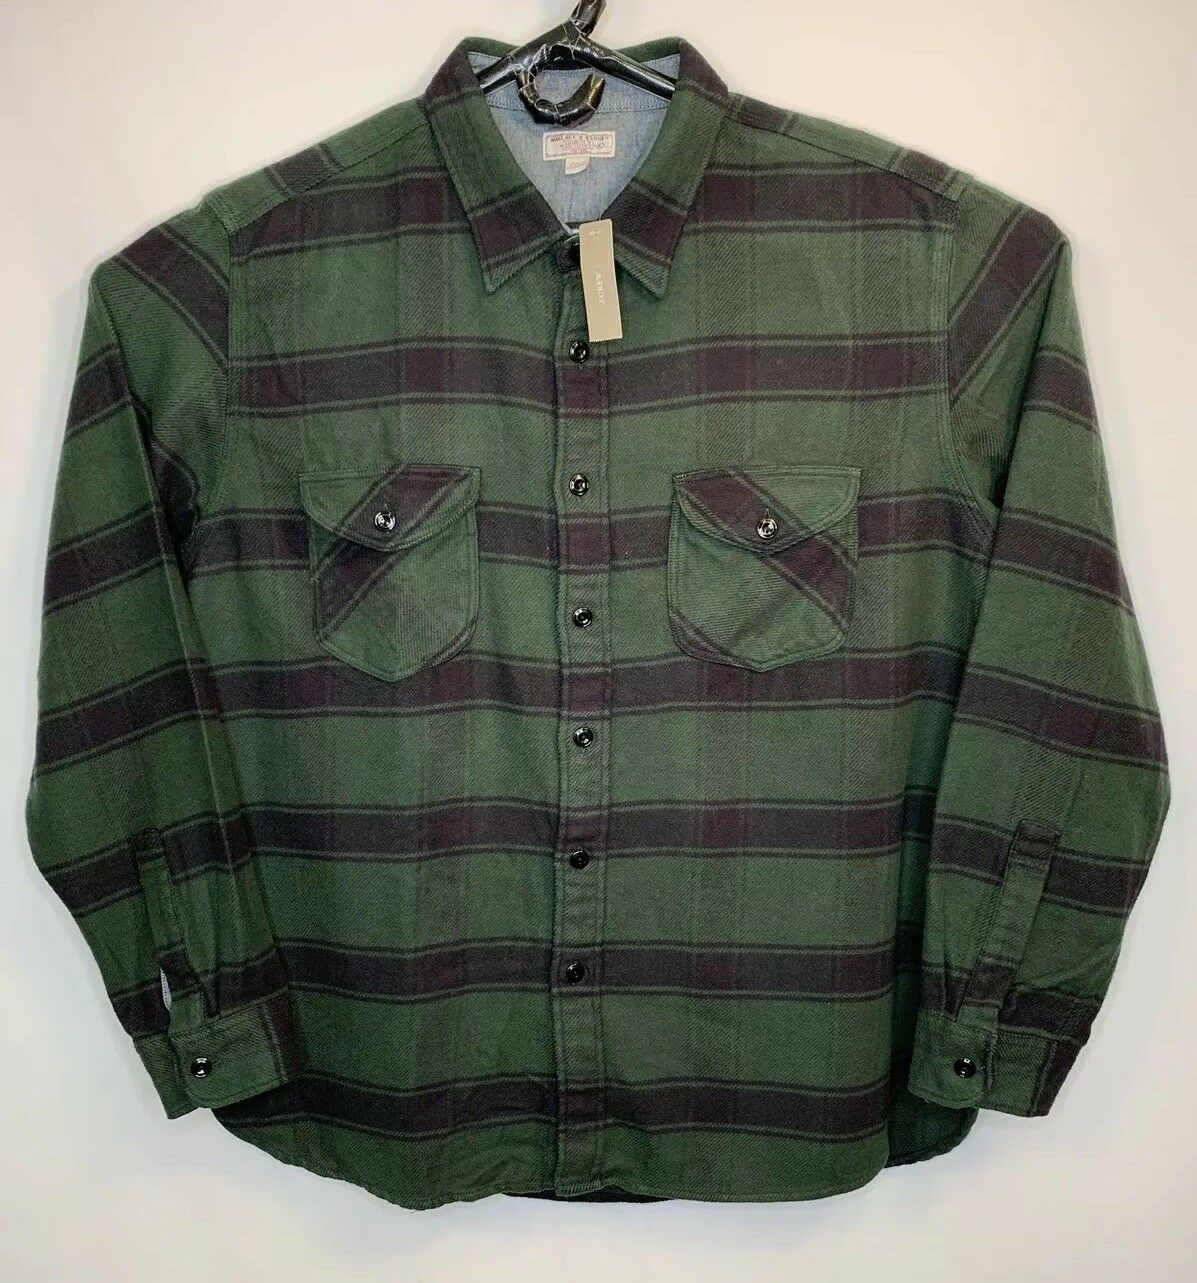 NEW Wallace & Barnes J Crew Men's 2XL XXL Heavyweight Plaid Flannel Shirt NWT